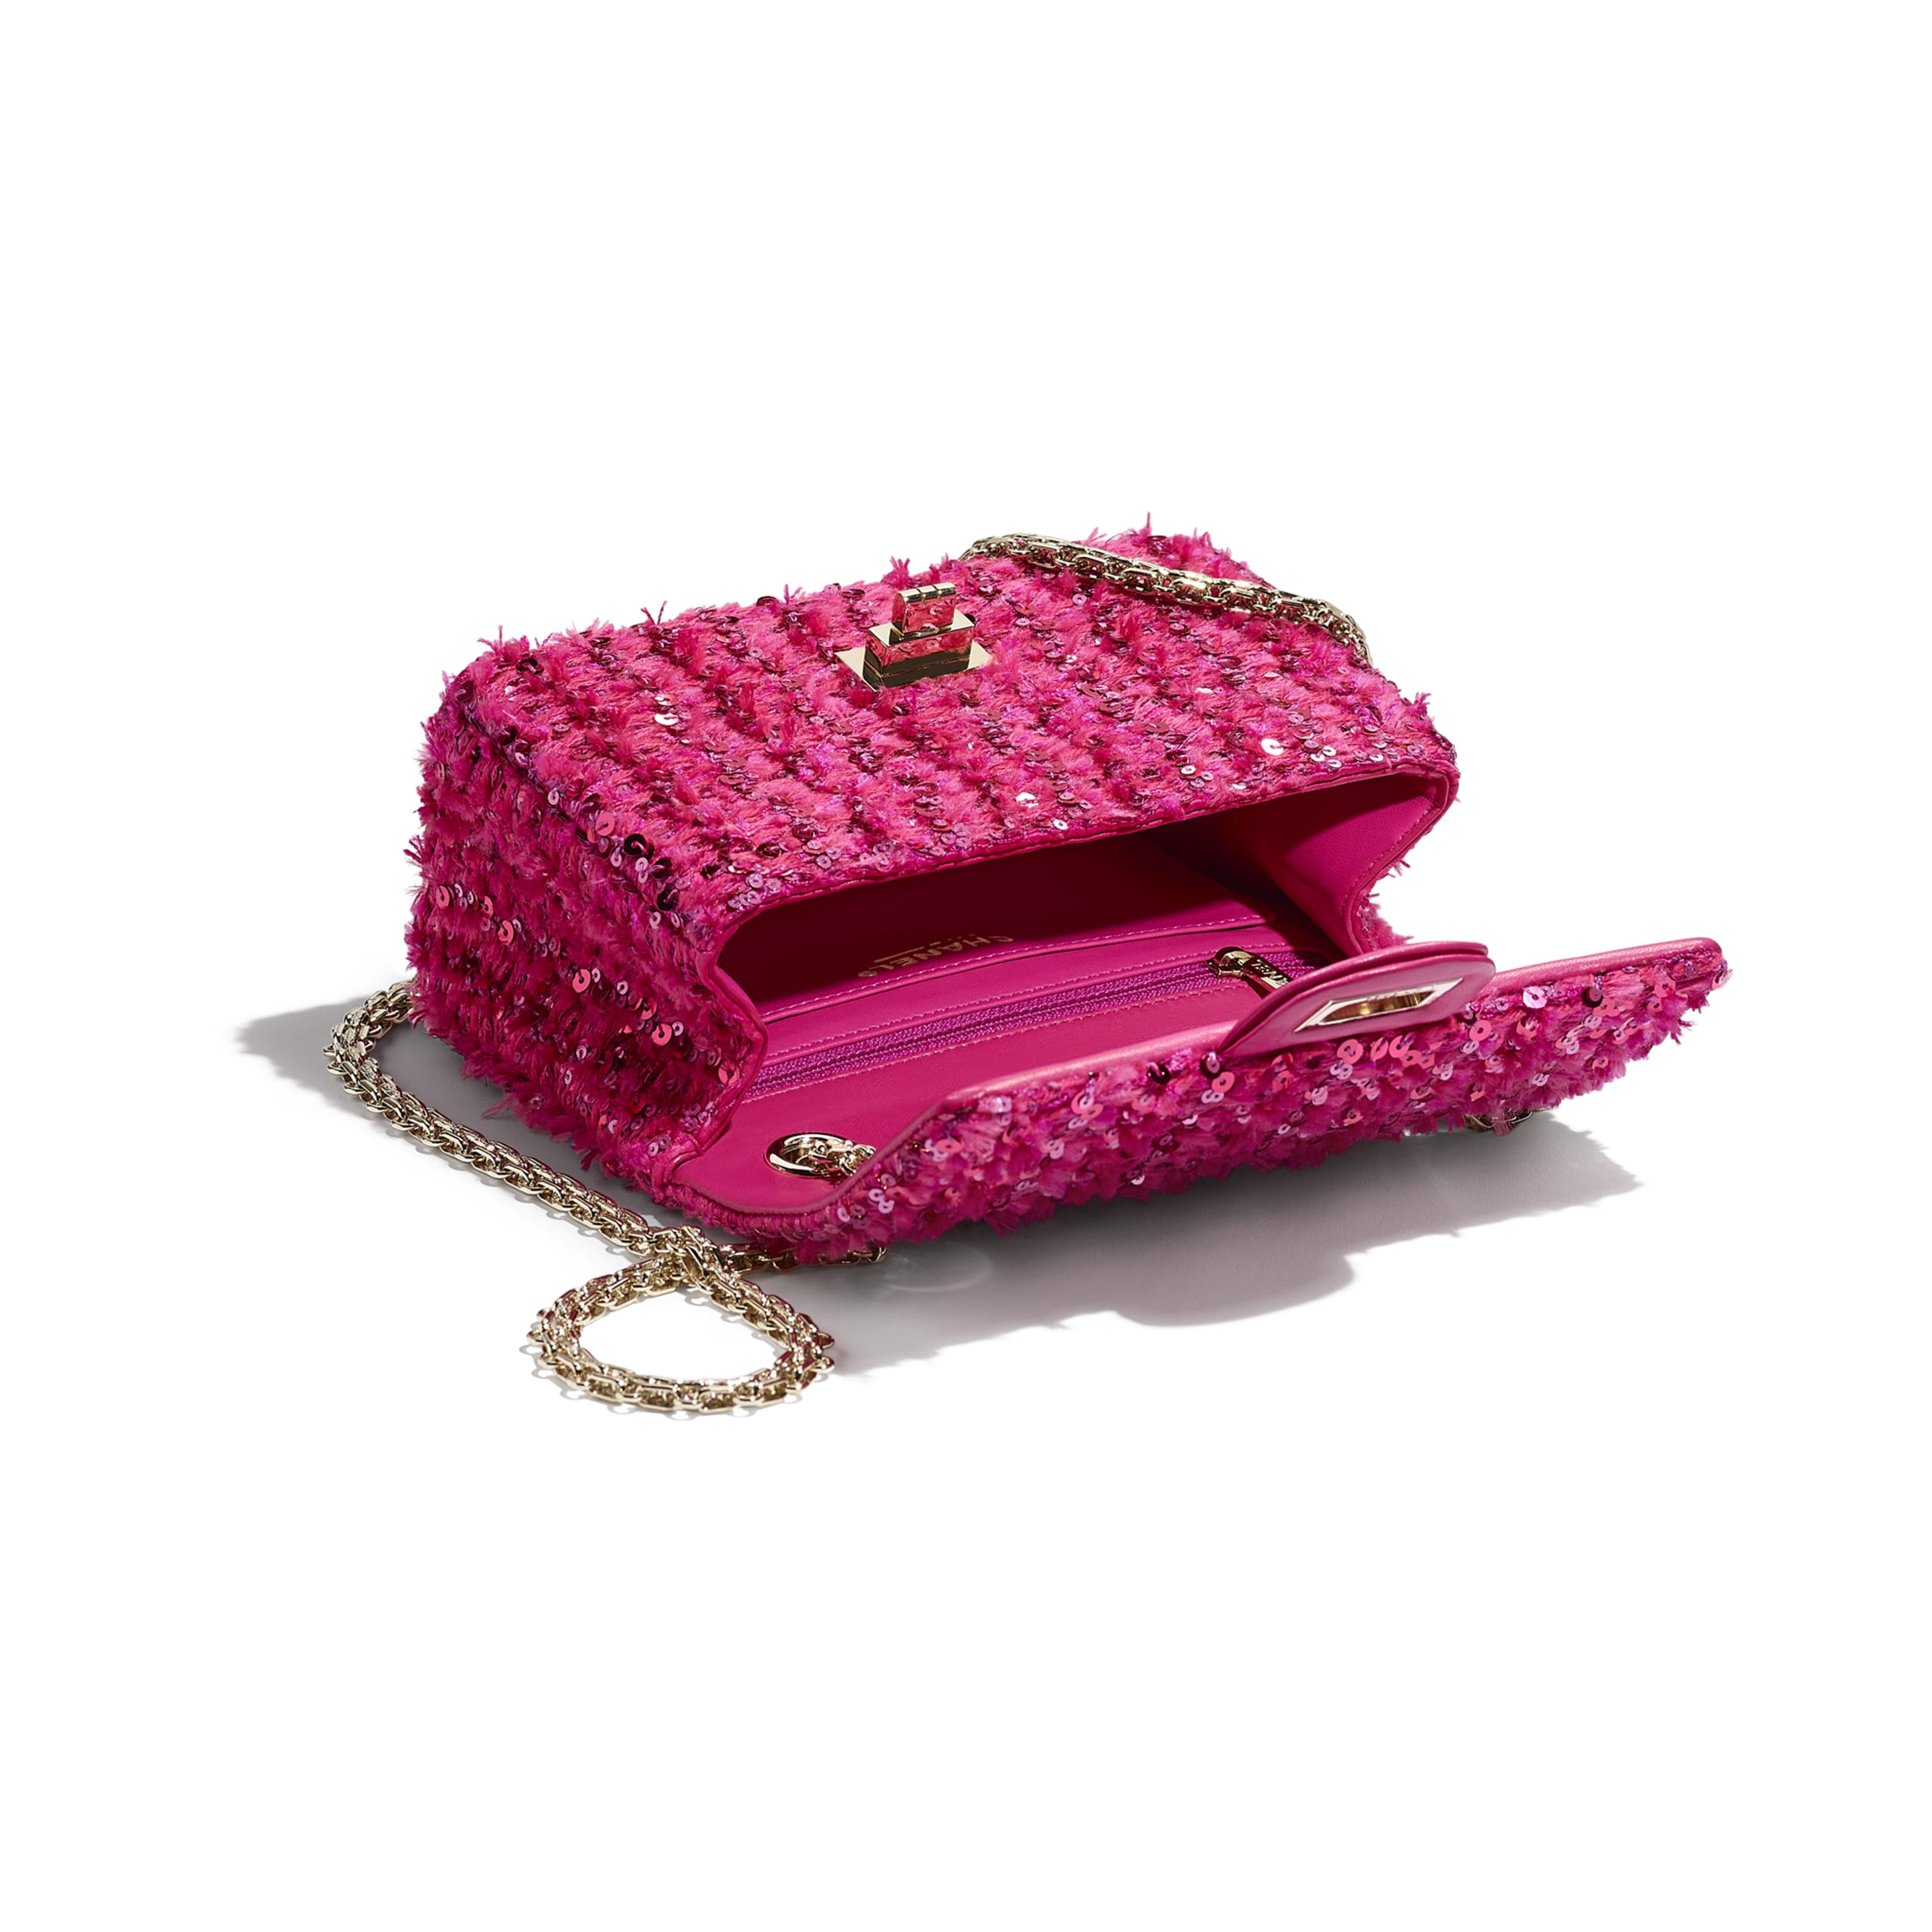 Small 2.55 Handbag - Pink - Sequins & Gold-Tone Metal - CHANEL - Other view - see standard sized version